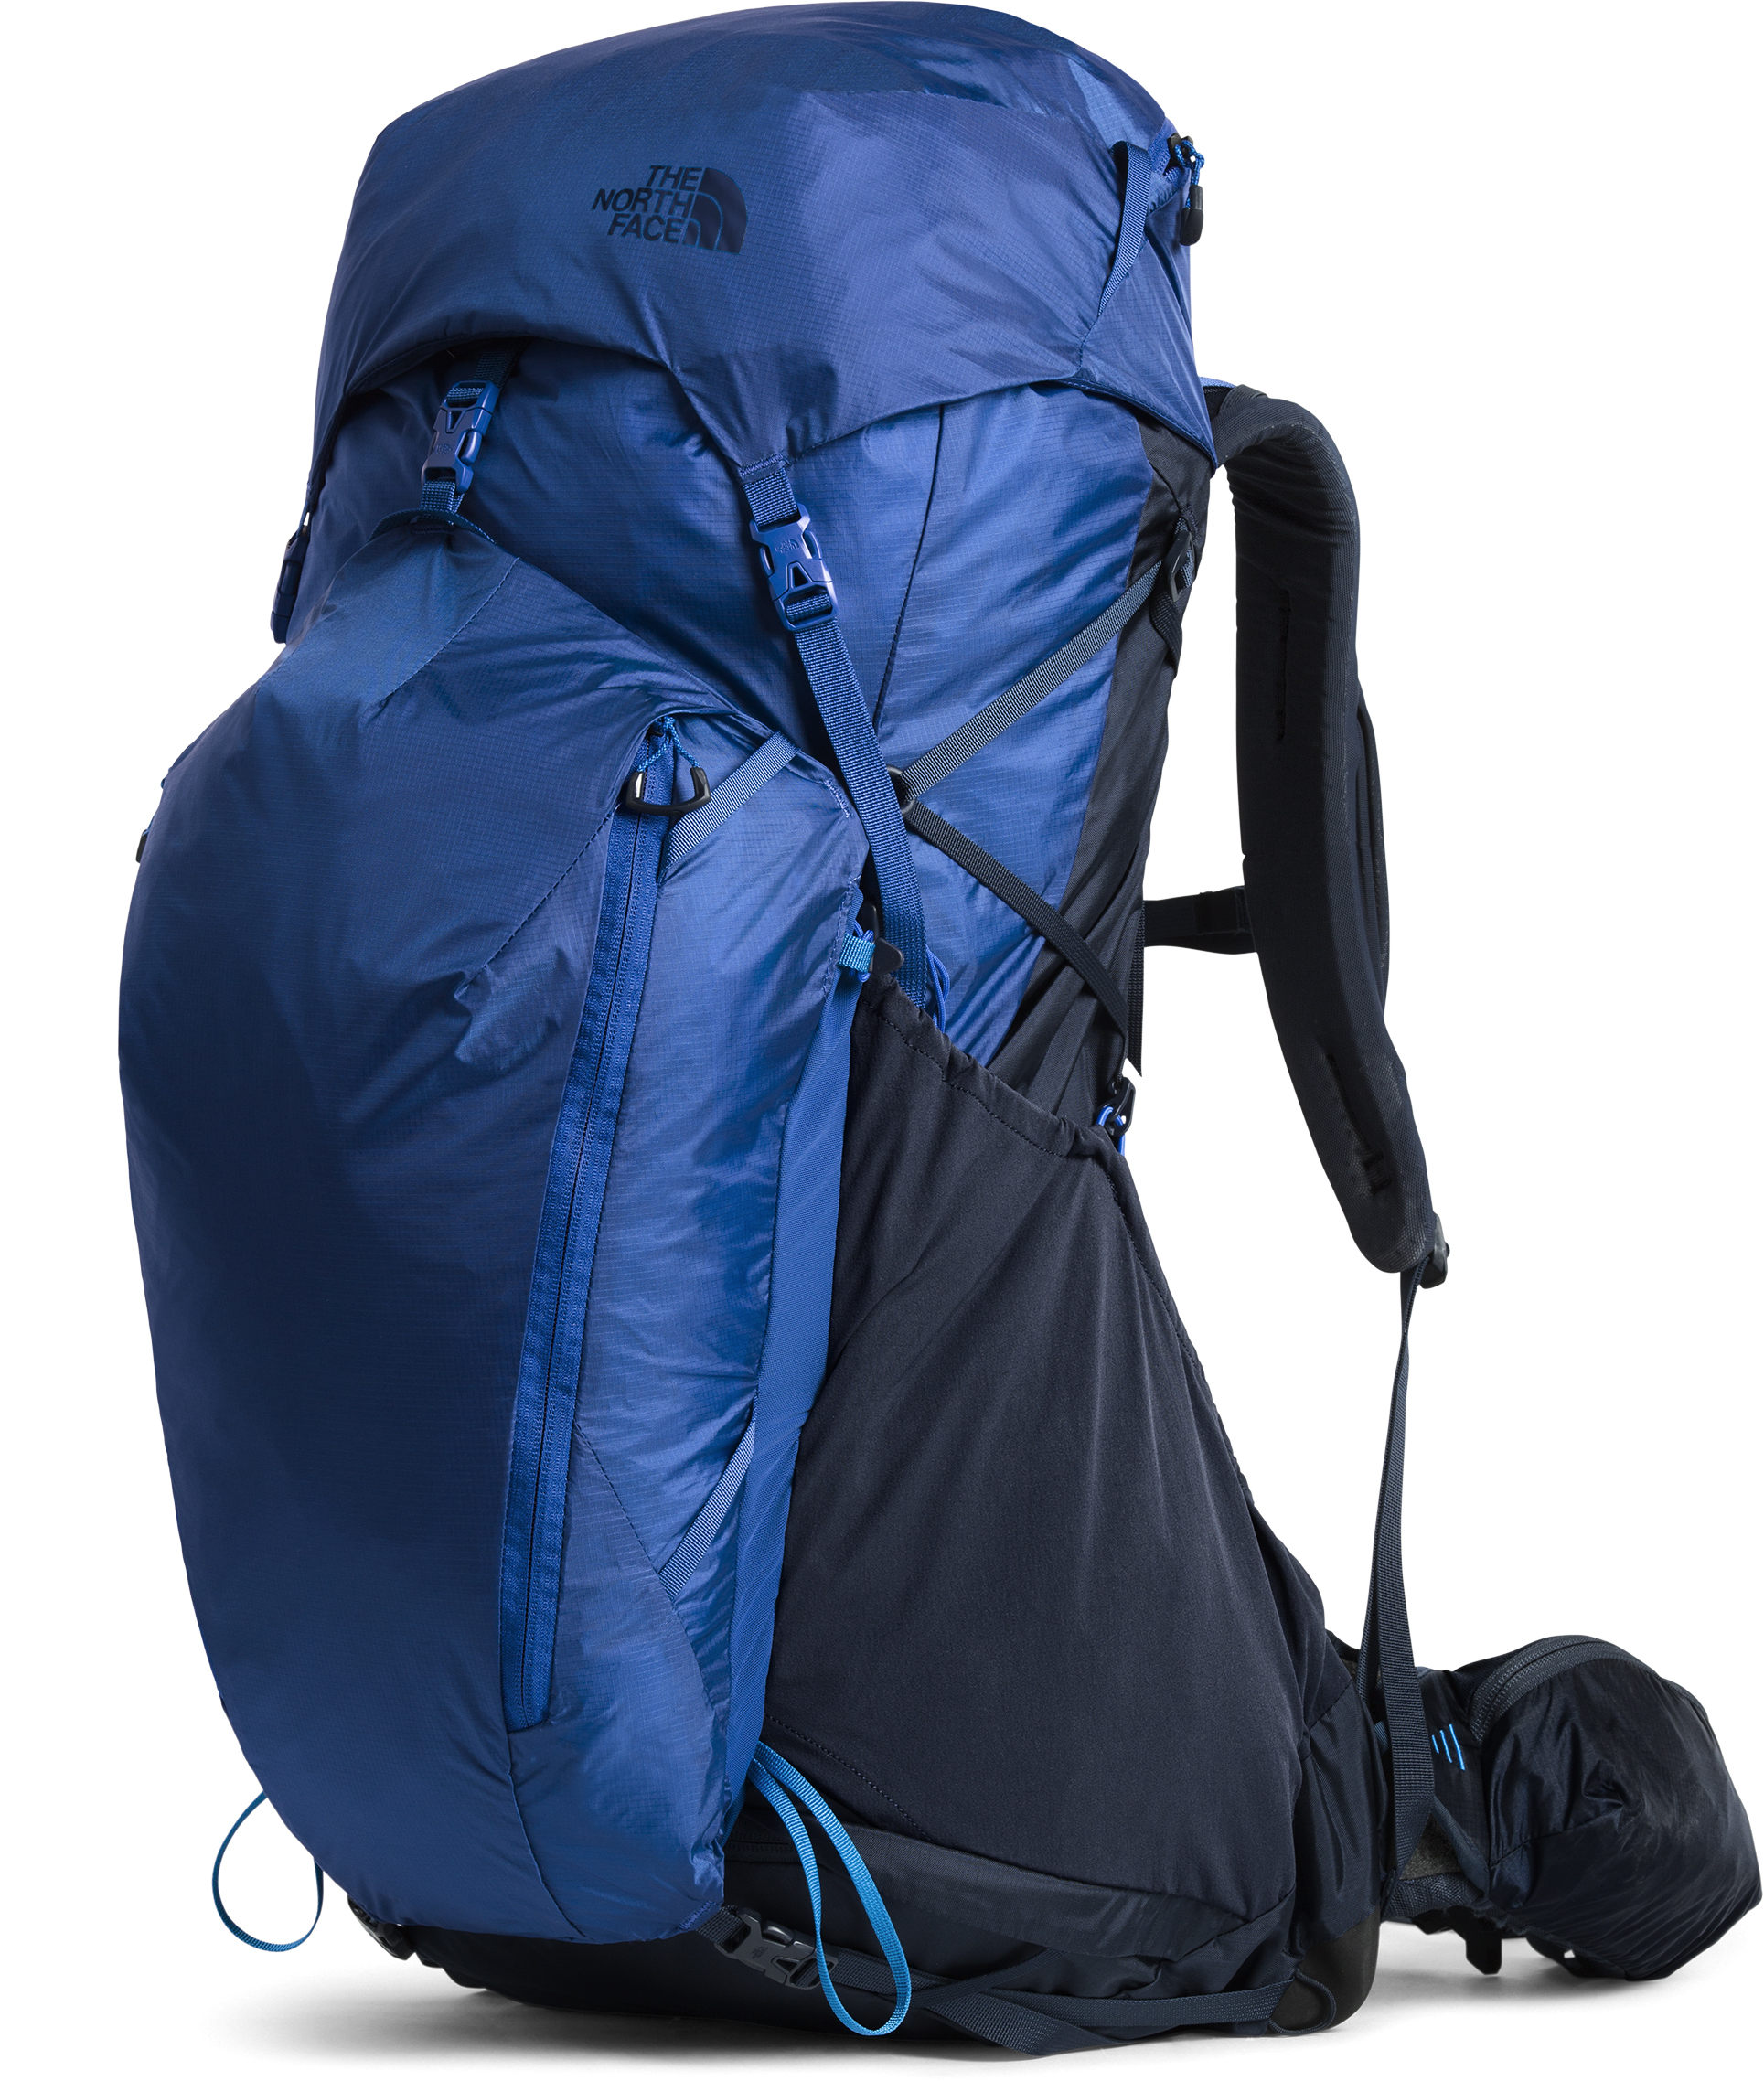 a5adb6d50 The North Face Banchee 65 Backpack - Unisex